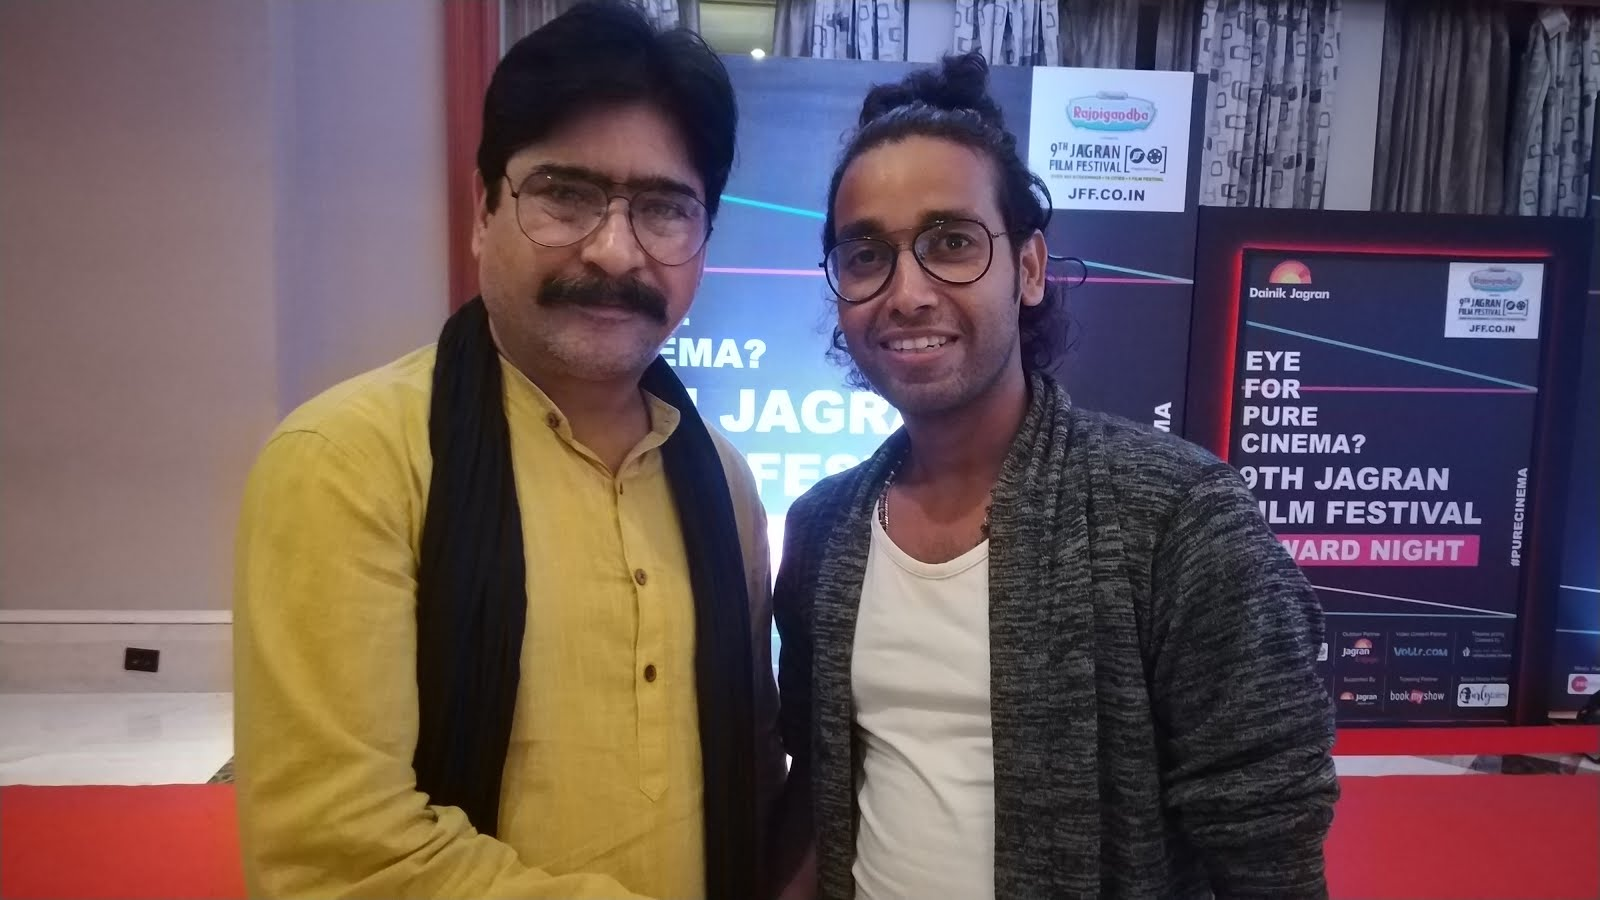 Rajnish BaBa Mehta with Yashpal Sharma